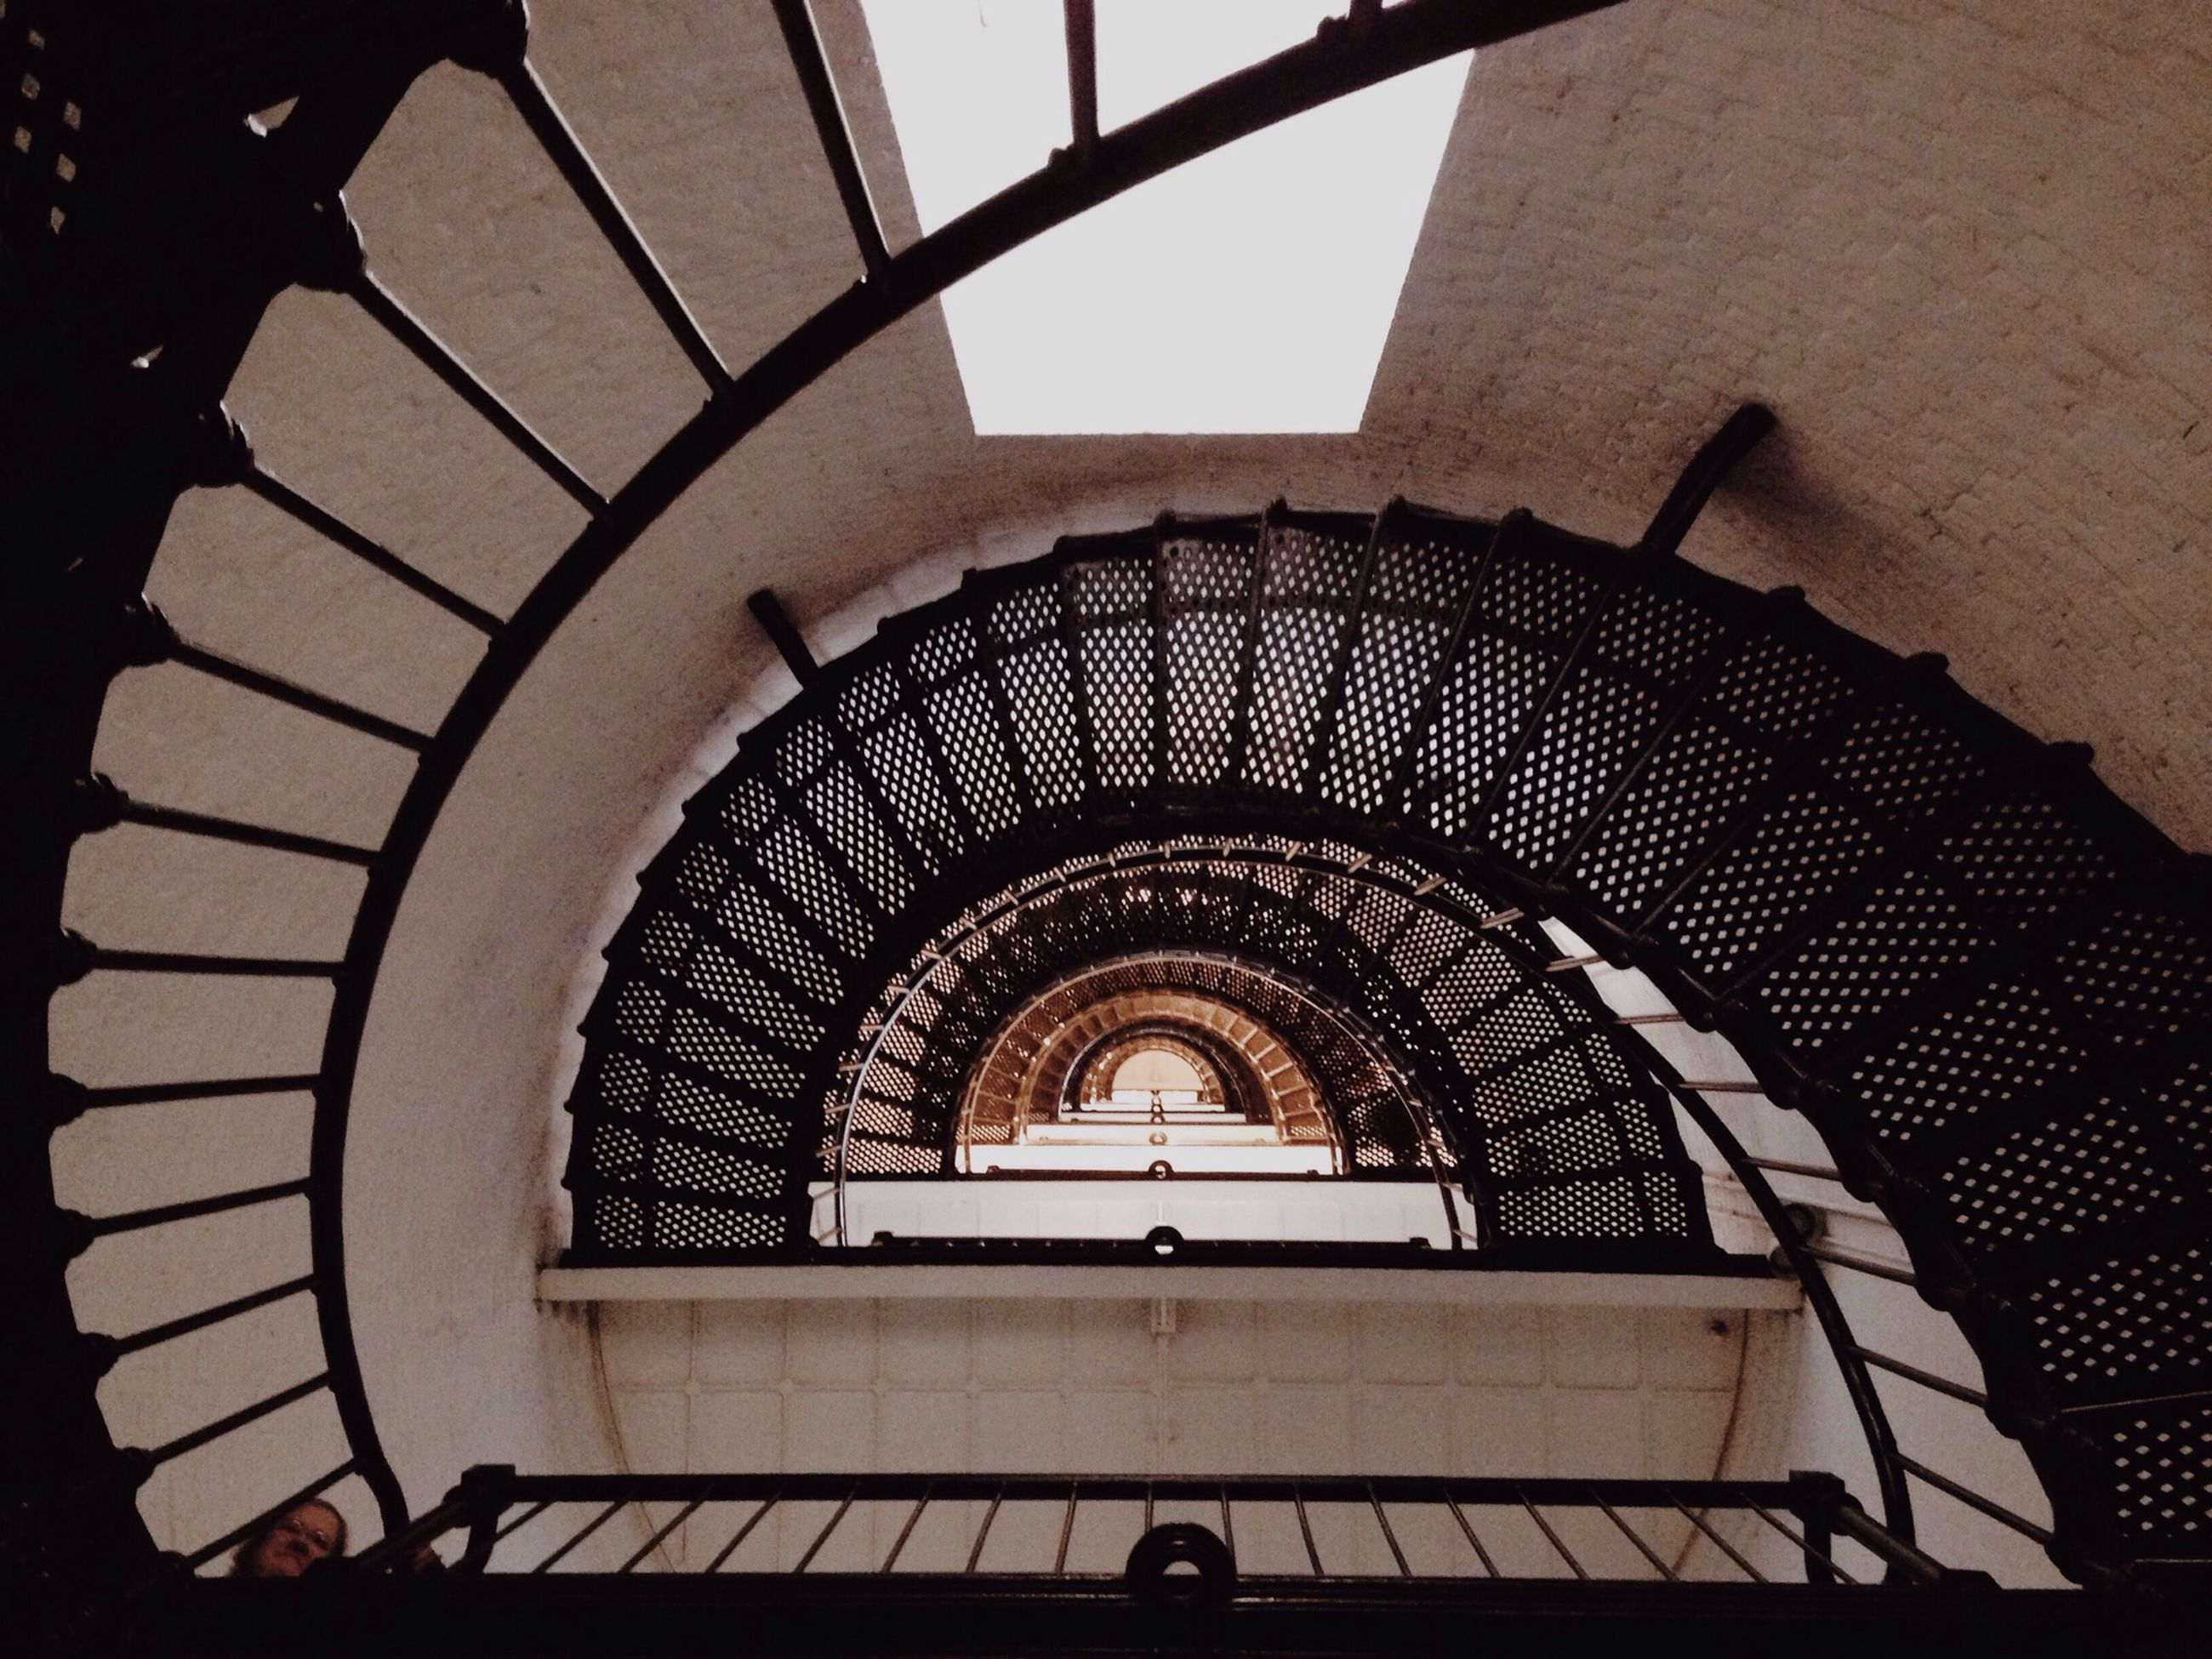 architecture, built structure, staircase, steps and staircases, indoors, steps, spiral staircase, low angle view, railing, building exterior, spiral, arch, directly below, building, stairs, pattern, ceiling, window, architectural feature, high angle view